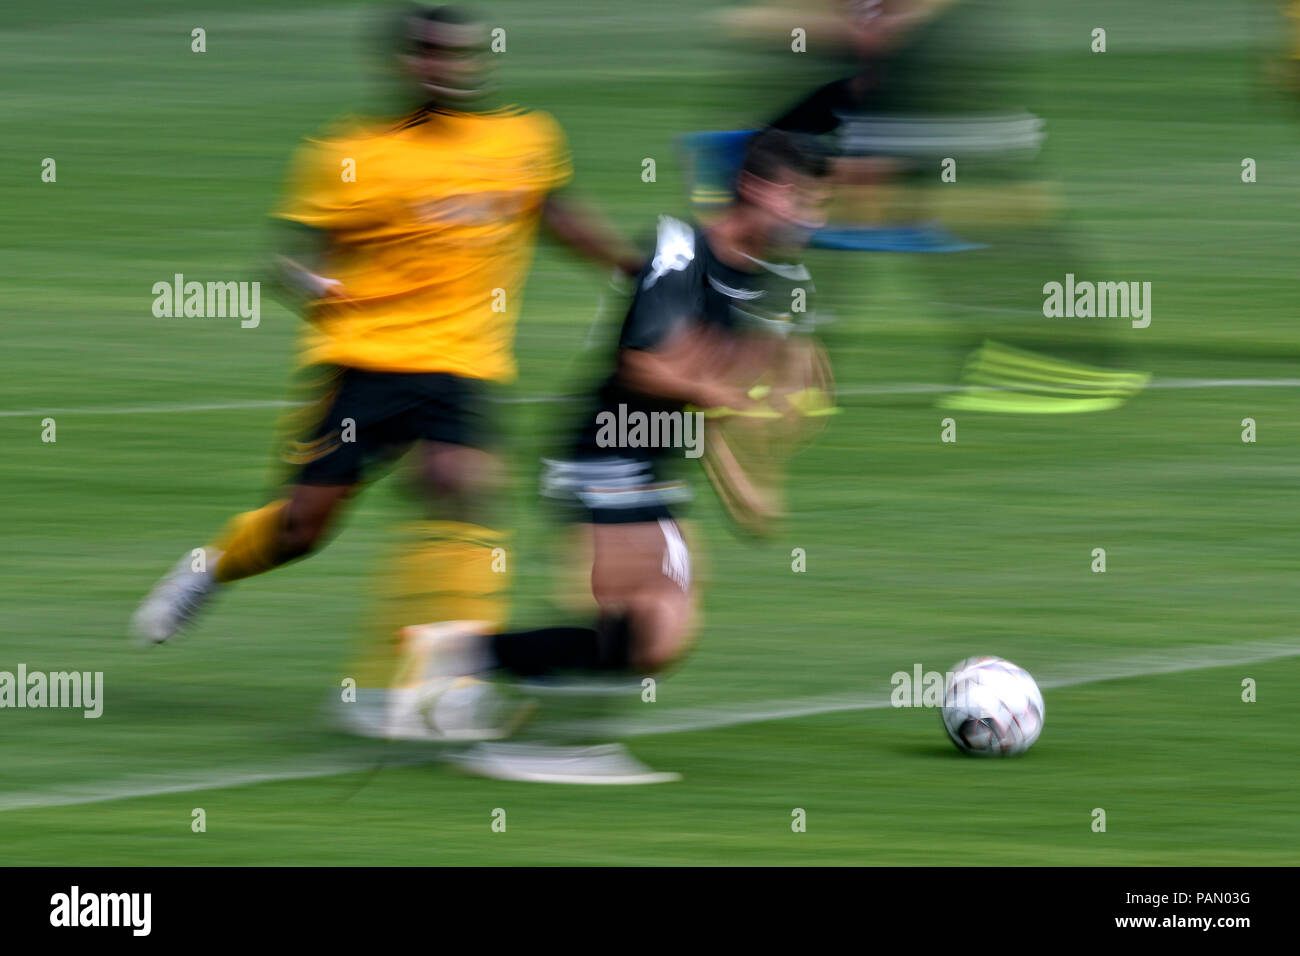 Soccer feature, legs and ball - Stock Image